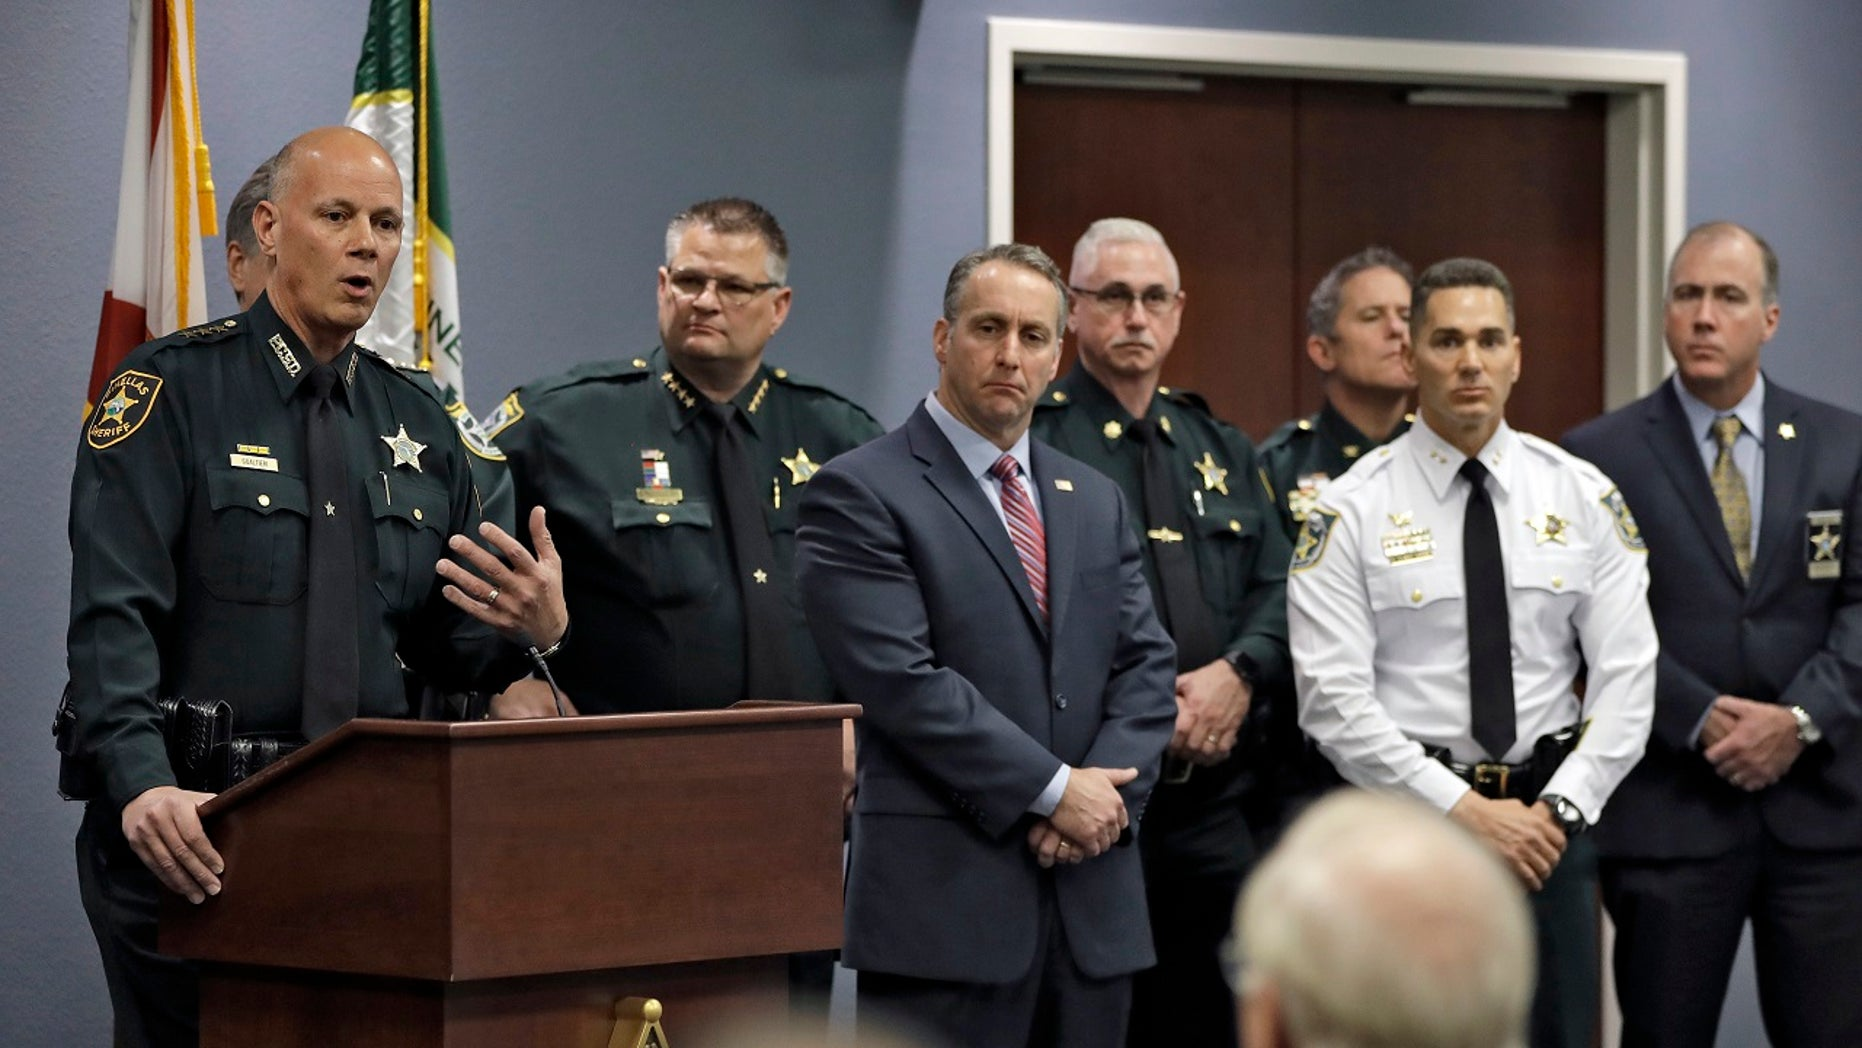 More than a dozen Florida law enforcement agencies have penned a deal with federal immigration officials allowing local police to detain illegal immigrants held on criminal charges.